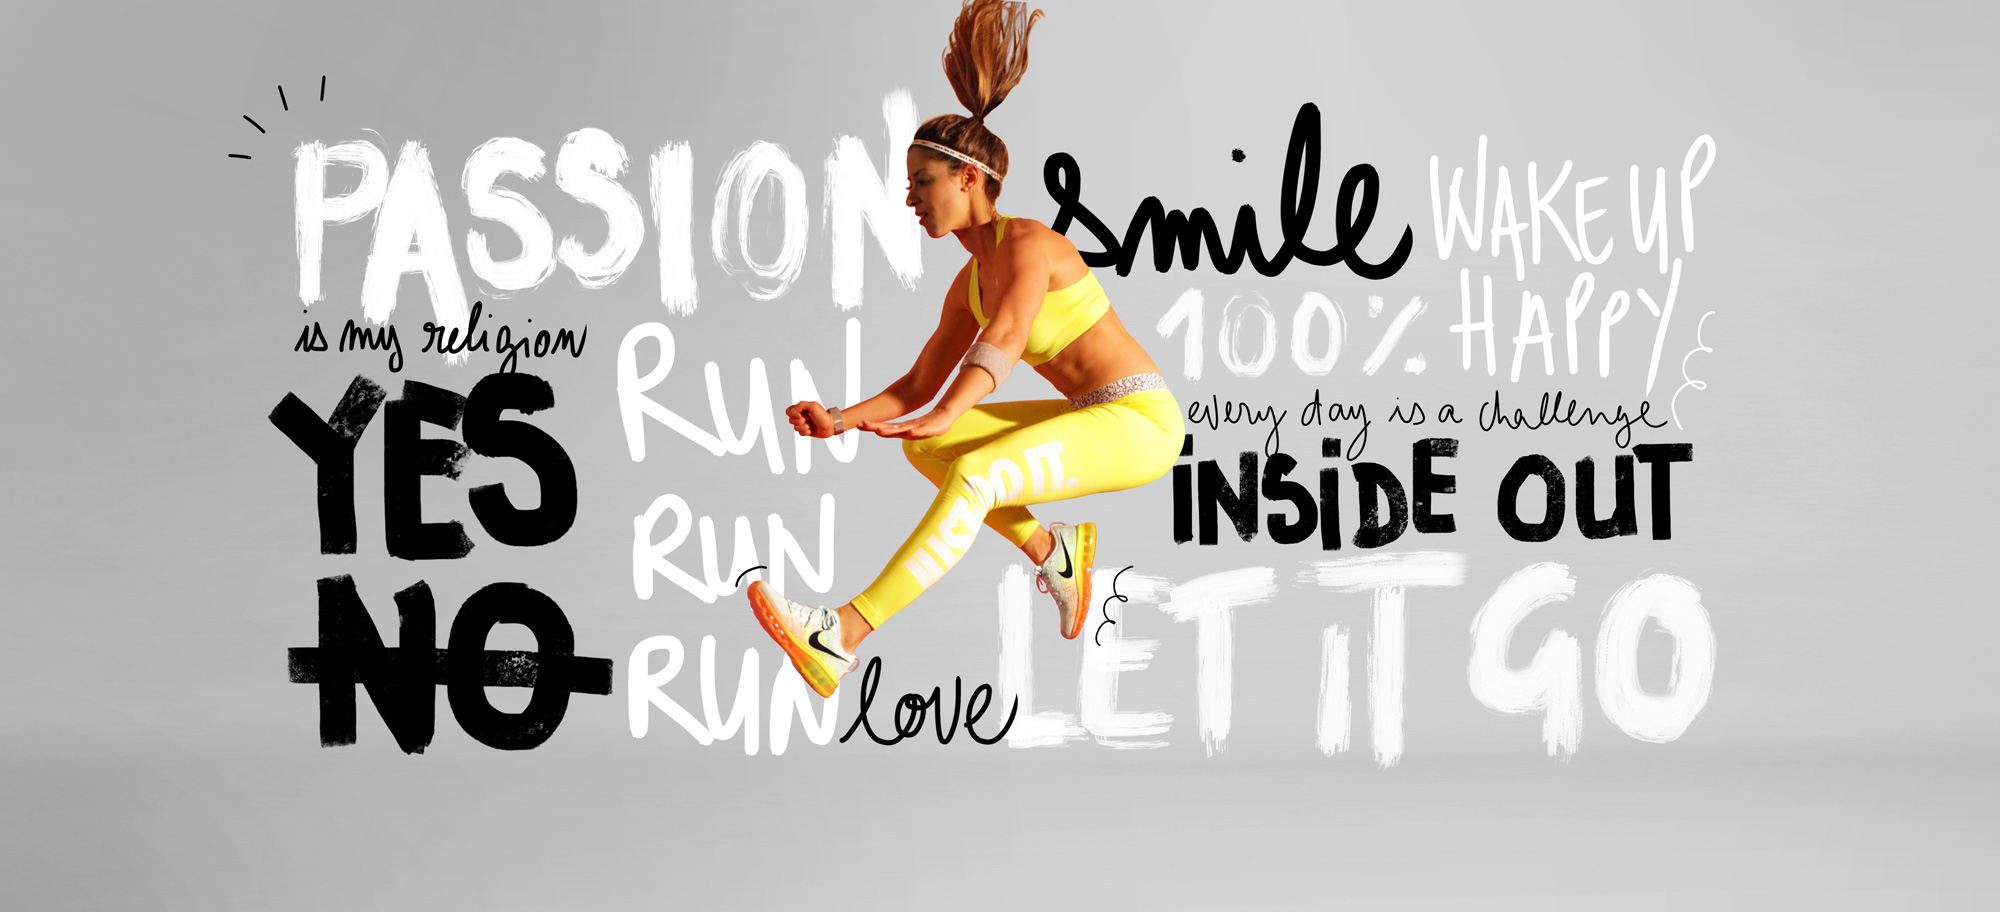 iconink-webdesign-cindy-coach-sport-athlete-nike-motivation-challenge